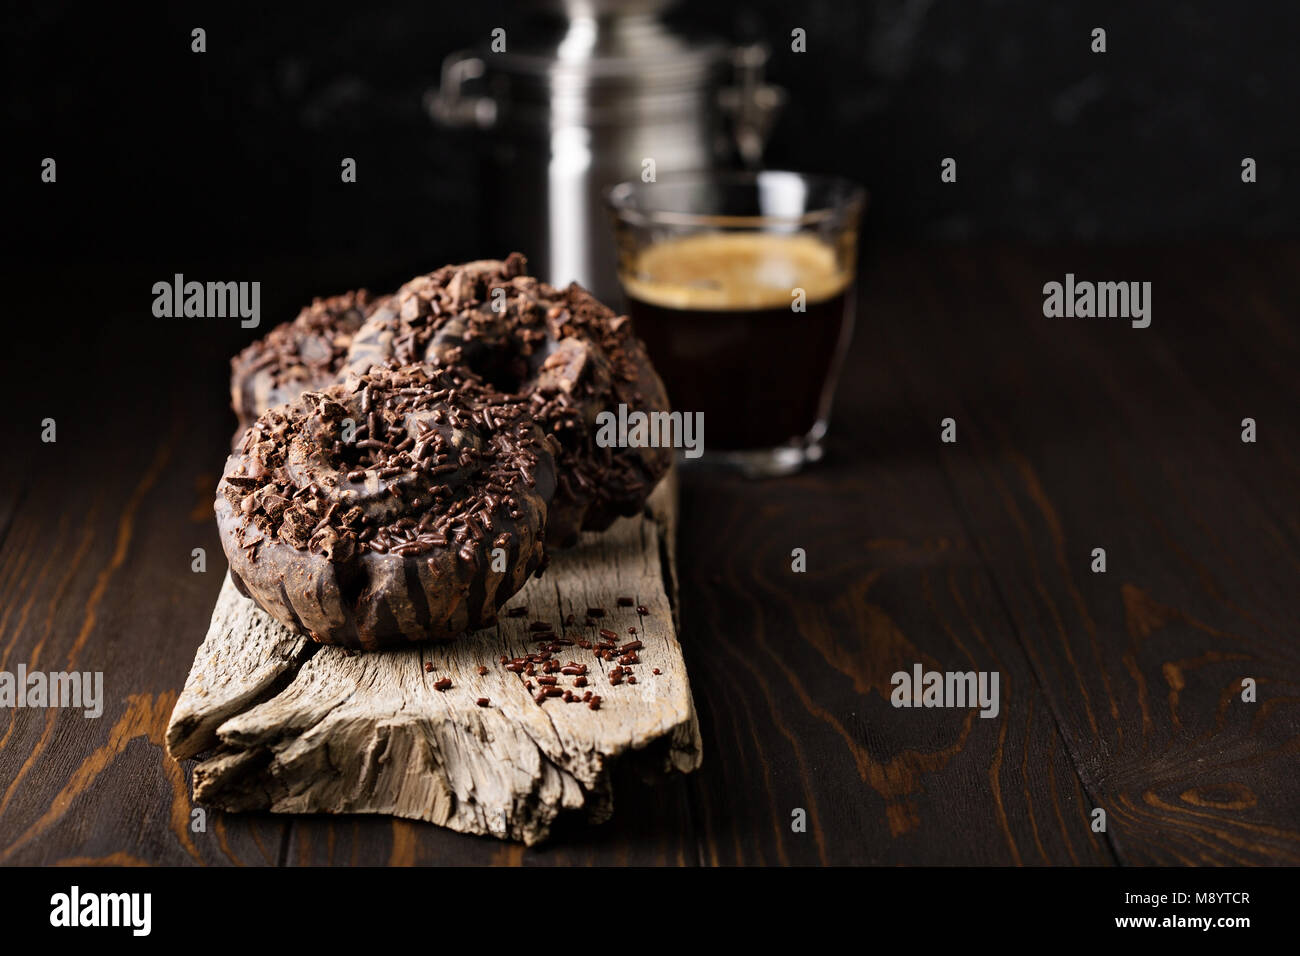 Chocolate donut with espresso - Stock Image